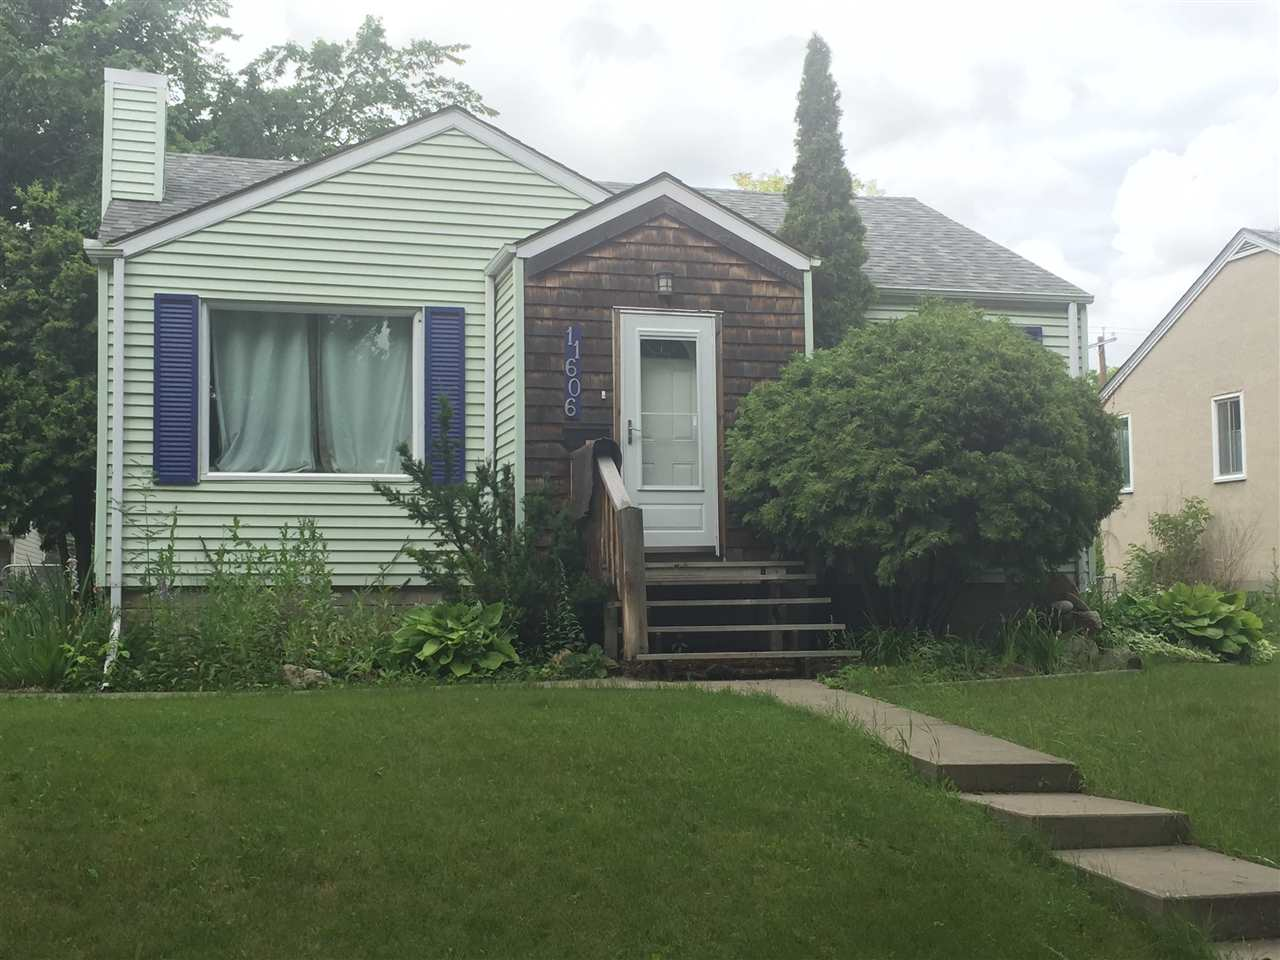 Fantastic opportunity to own a lovely home on a picturesque elm lined street in Inglewood! This cute and cozy bungalow offers 2 spacious bedrooms on the main level as well as a bright living room with coved ceiling and birch hardwood floors, updated 4 pc bathroom with tile floors and a cheery kitchen with open shelving. Basement includes a family room, bedroom and lots of storage space. Gorgeous, large west facing back yard offers two decks as well as oversized, recently built 26x26 double garage. Newer furnace and roof. Close to shopping, schools, and downtown. Currently rented for $1,500 per month, this home is a fantastic investment and/or development opportunity!